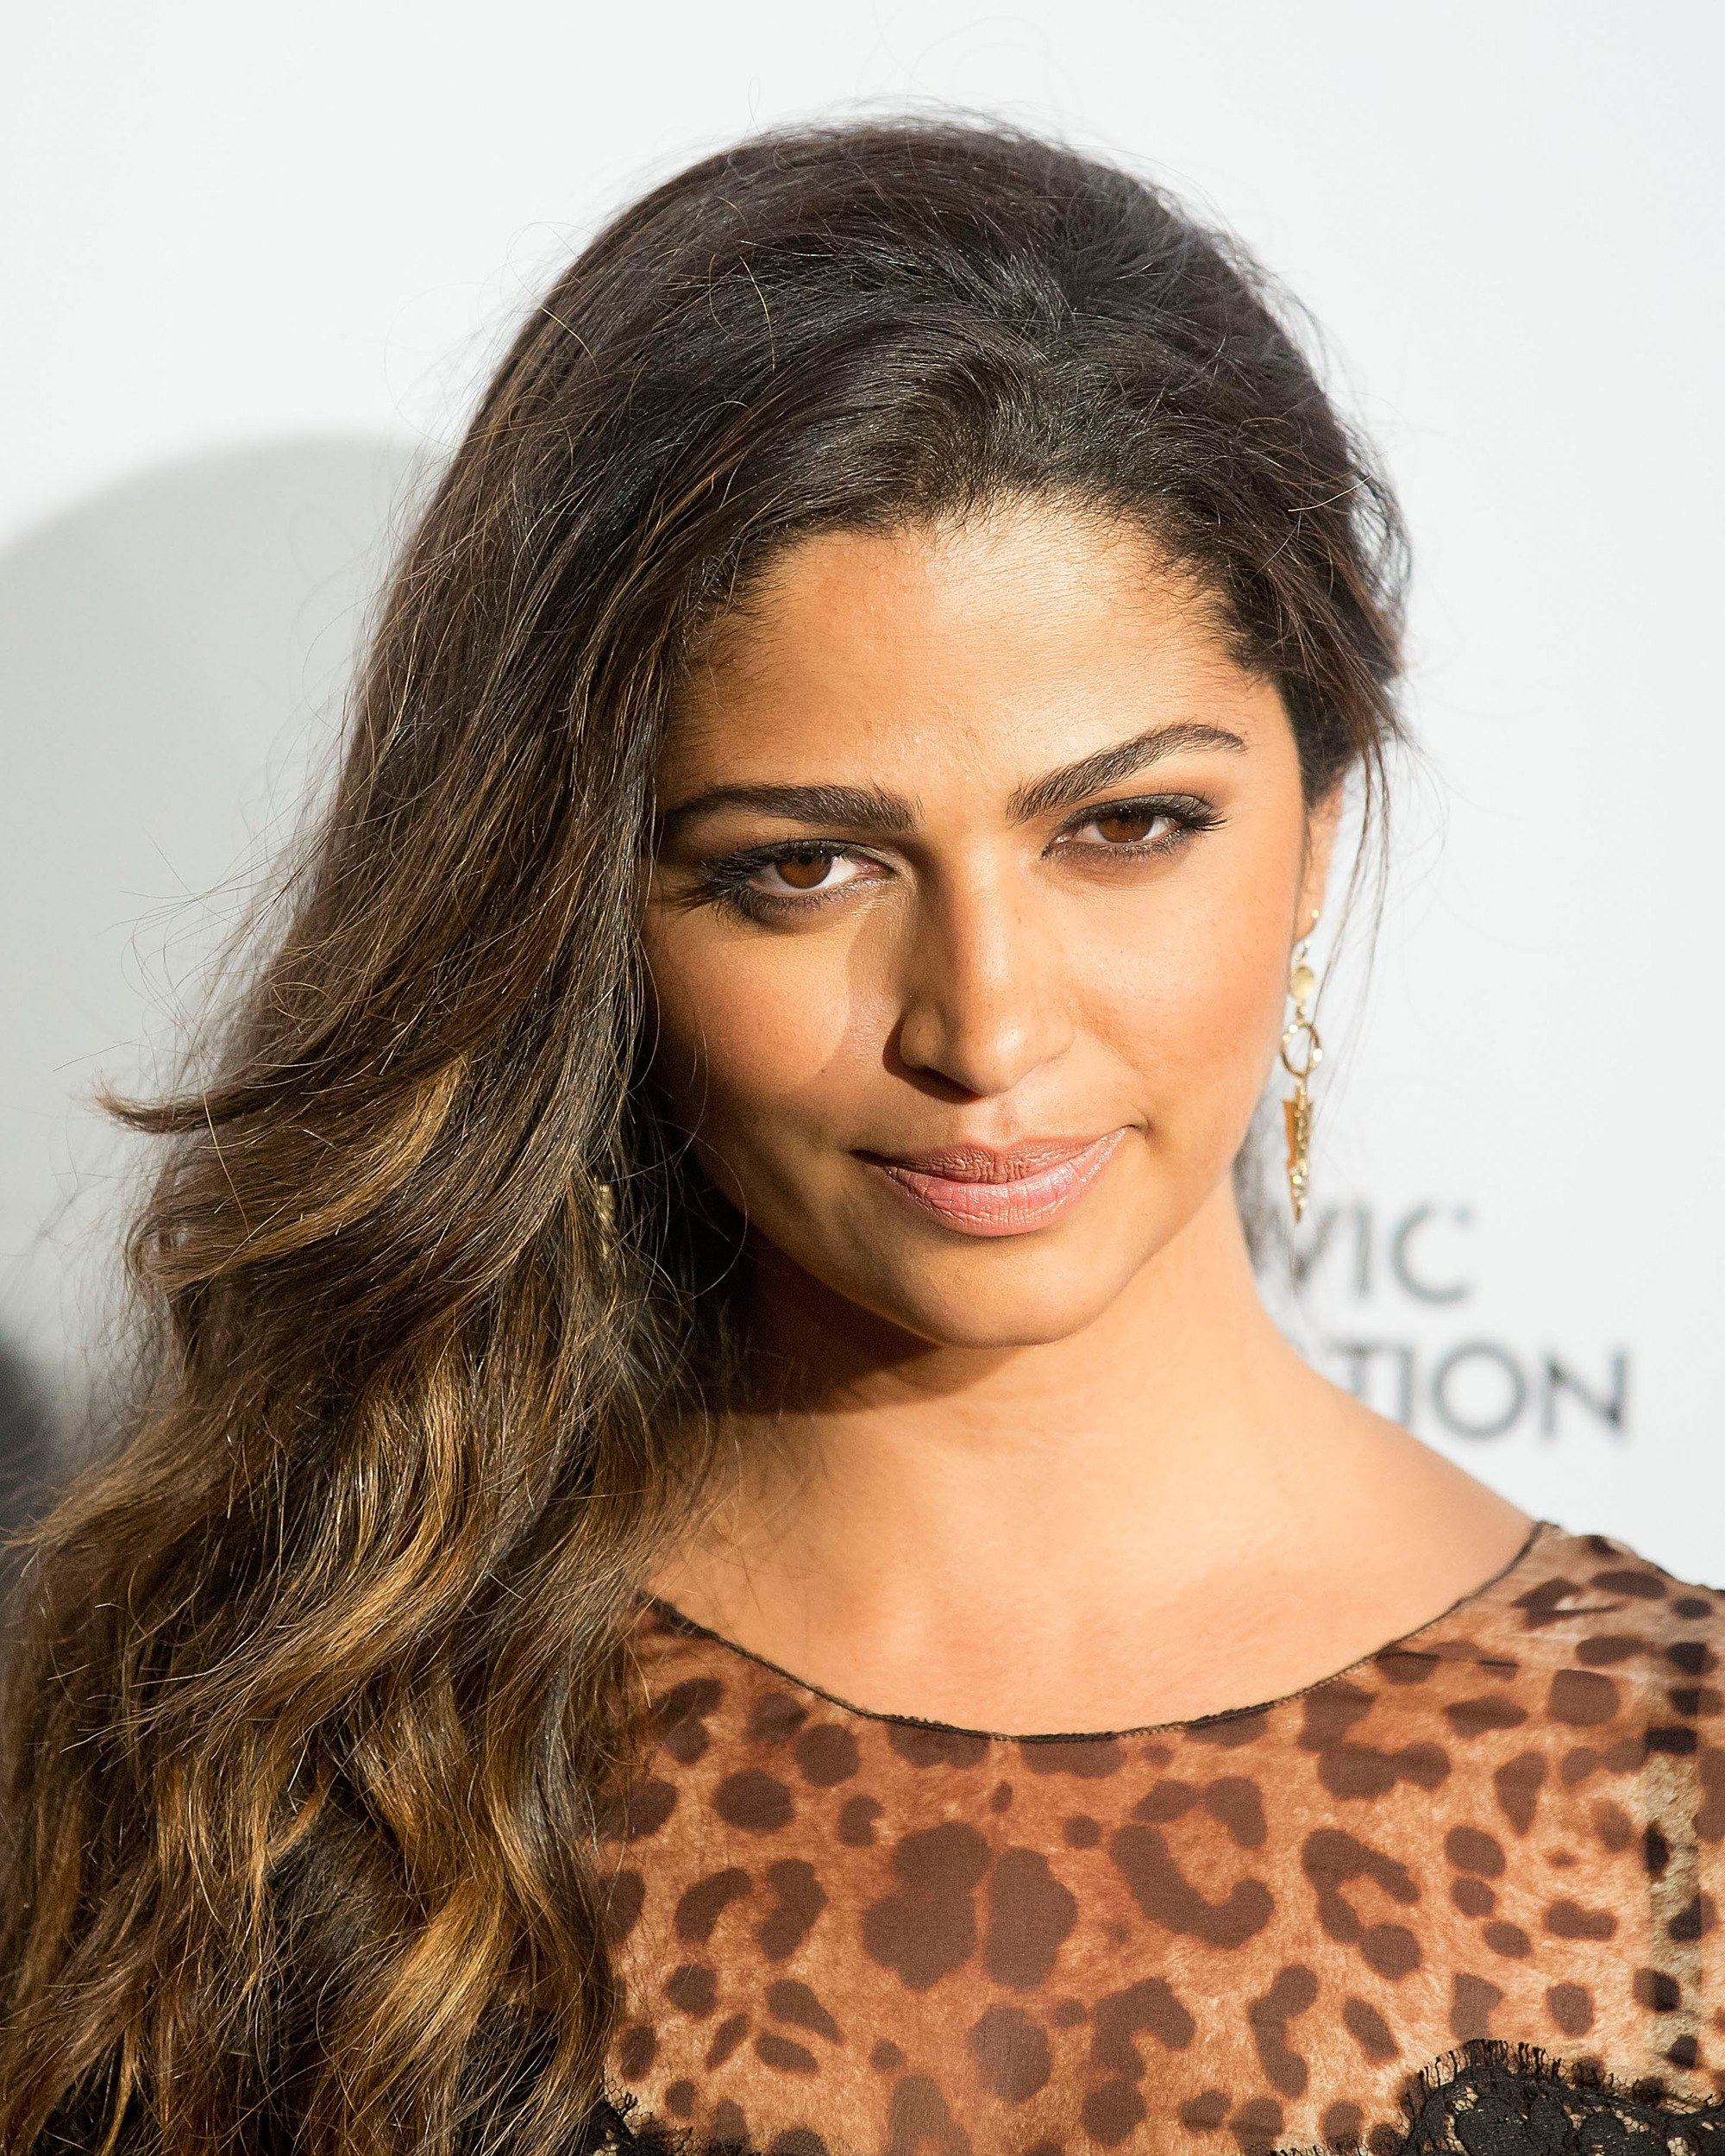 Camila Alves con mechas californianas